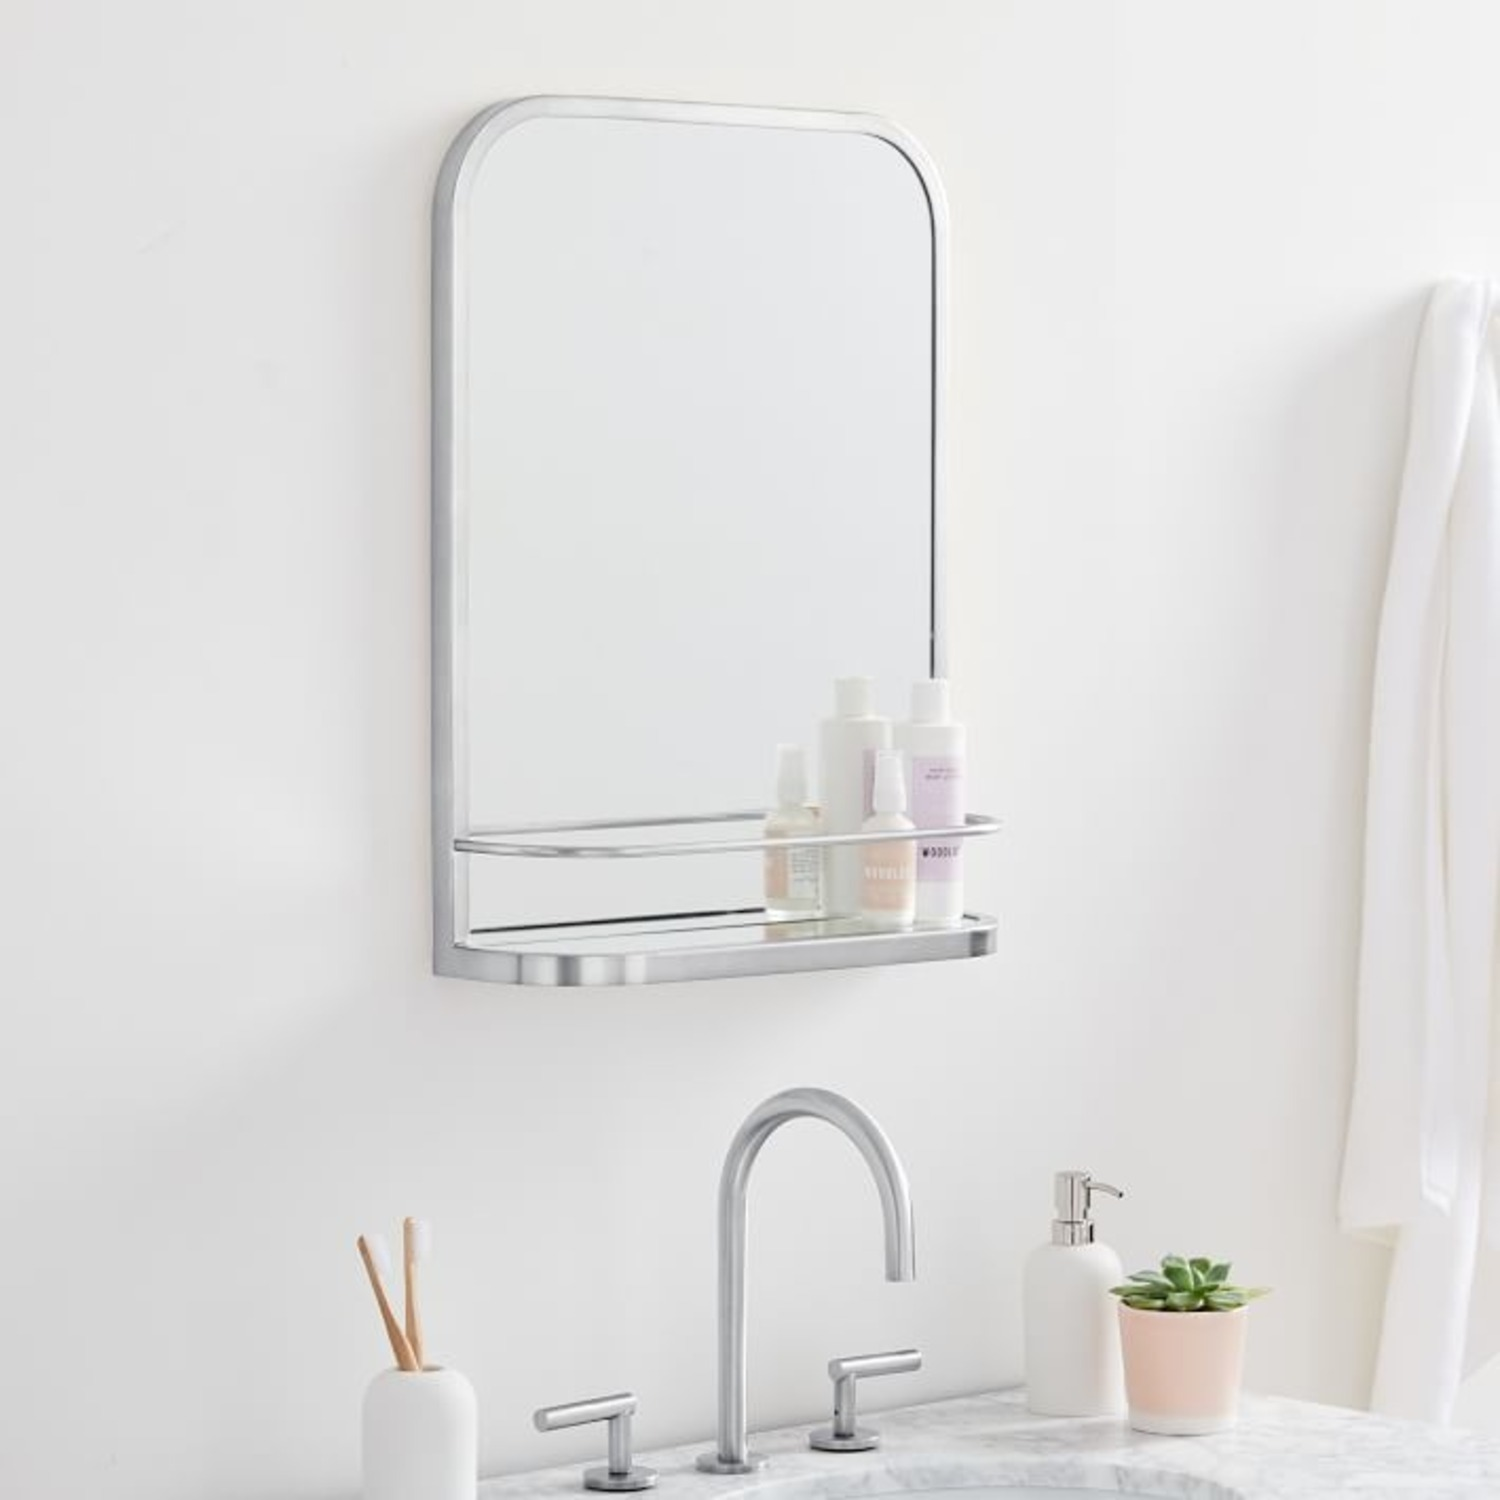 West Elm Seamless Mirror with Shelf, Chrome - image-2